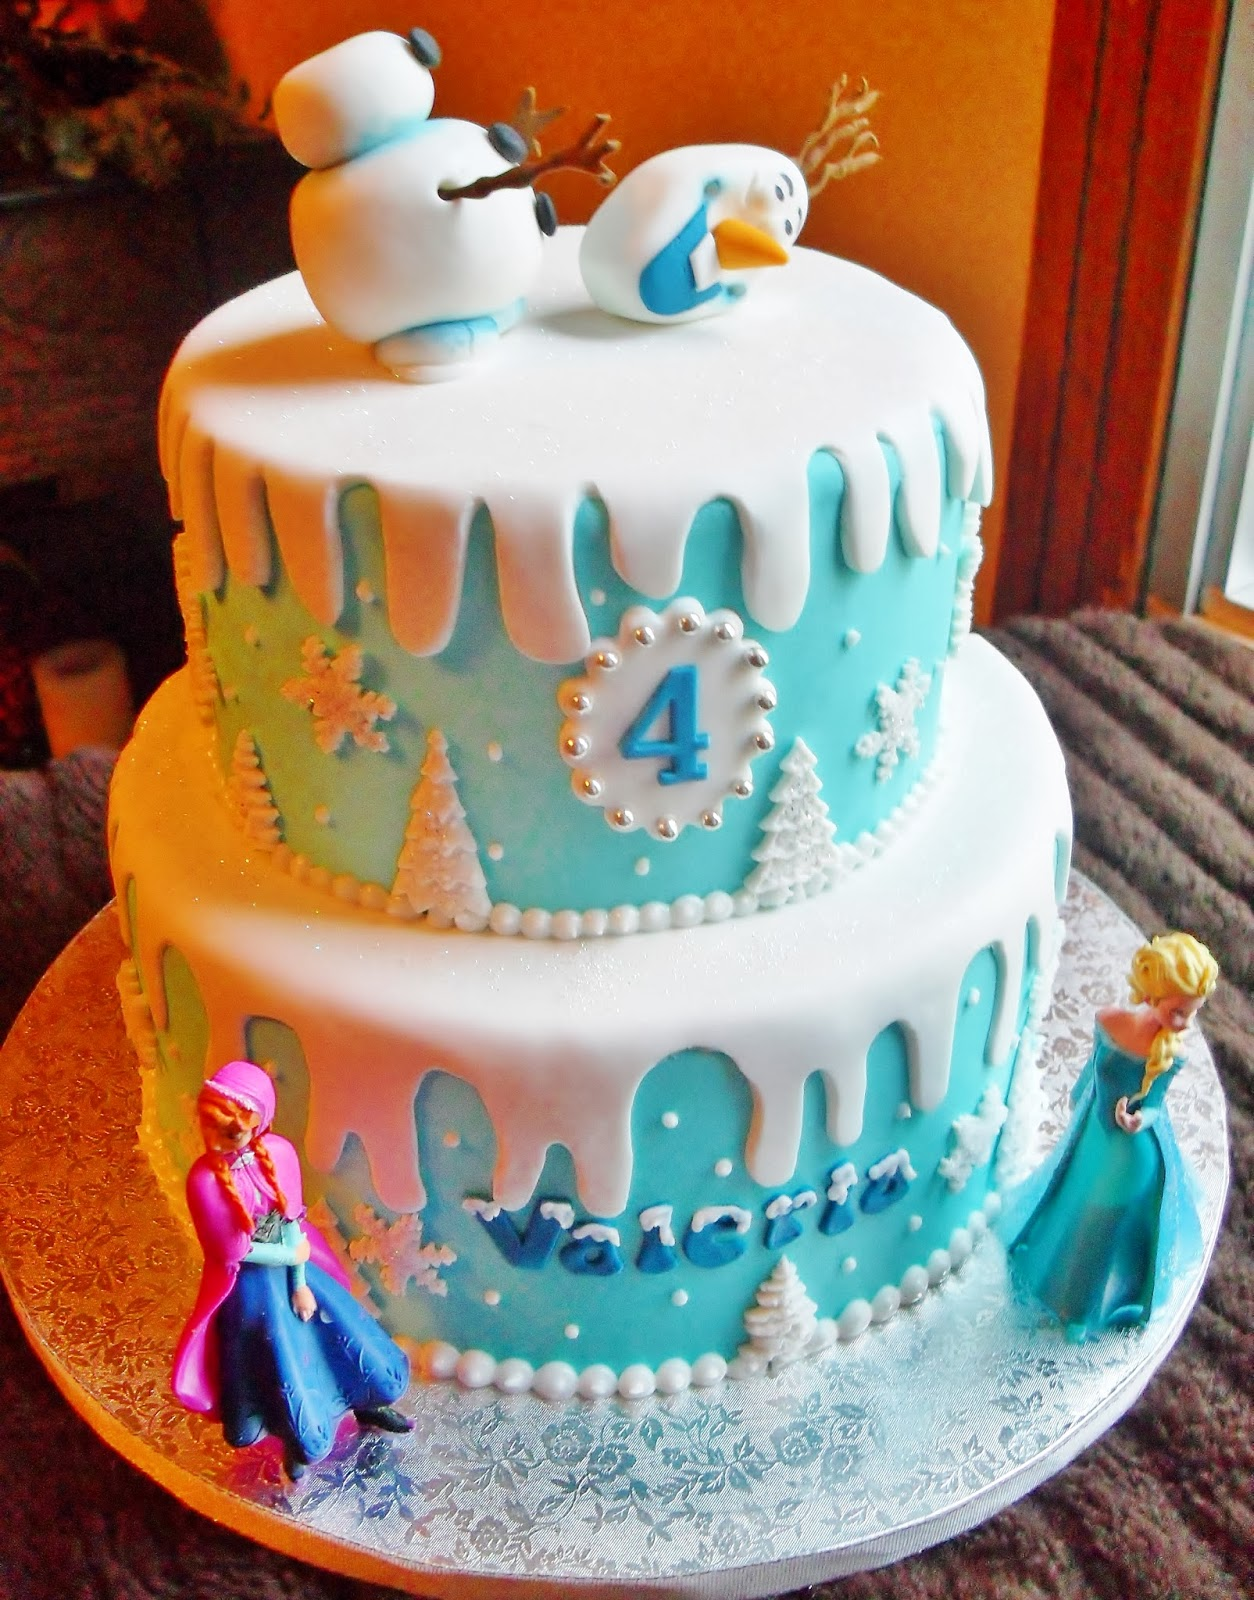 Frozen Cake - Cakes Photo (36769270) - Fanpop